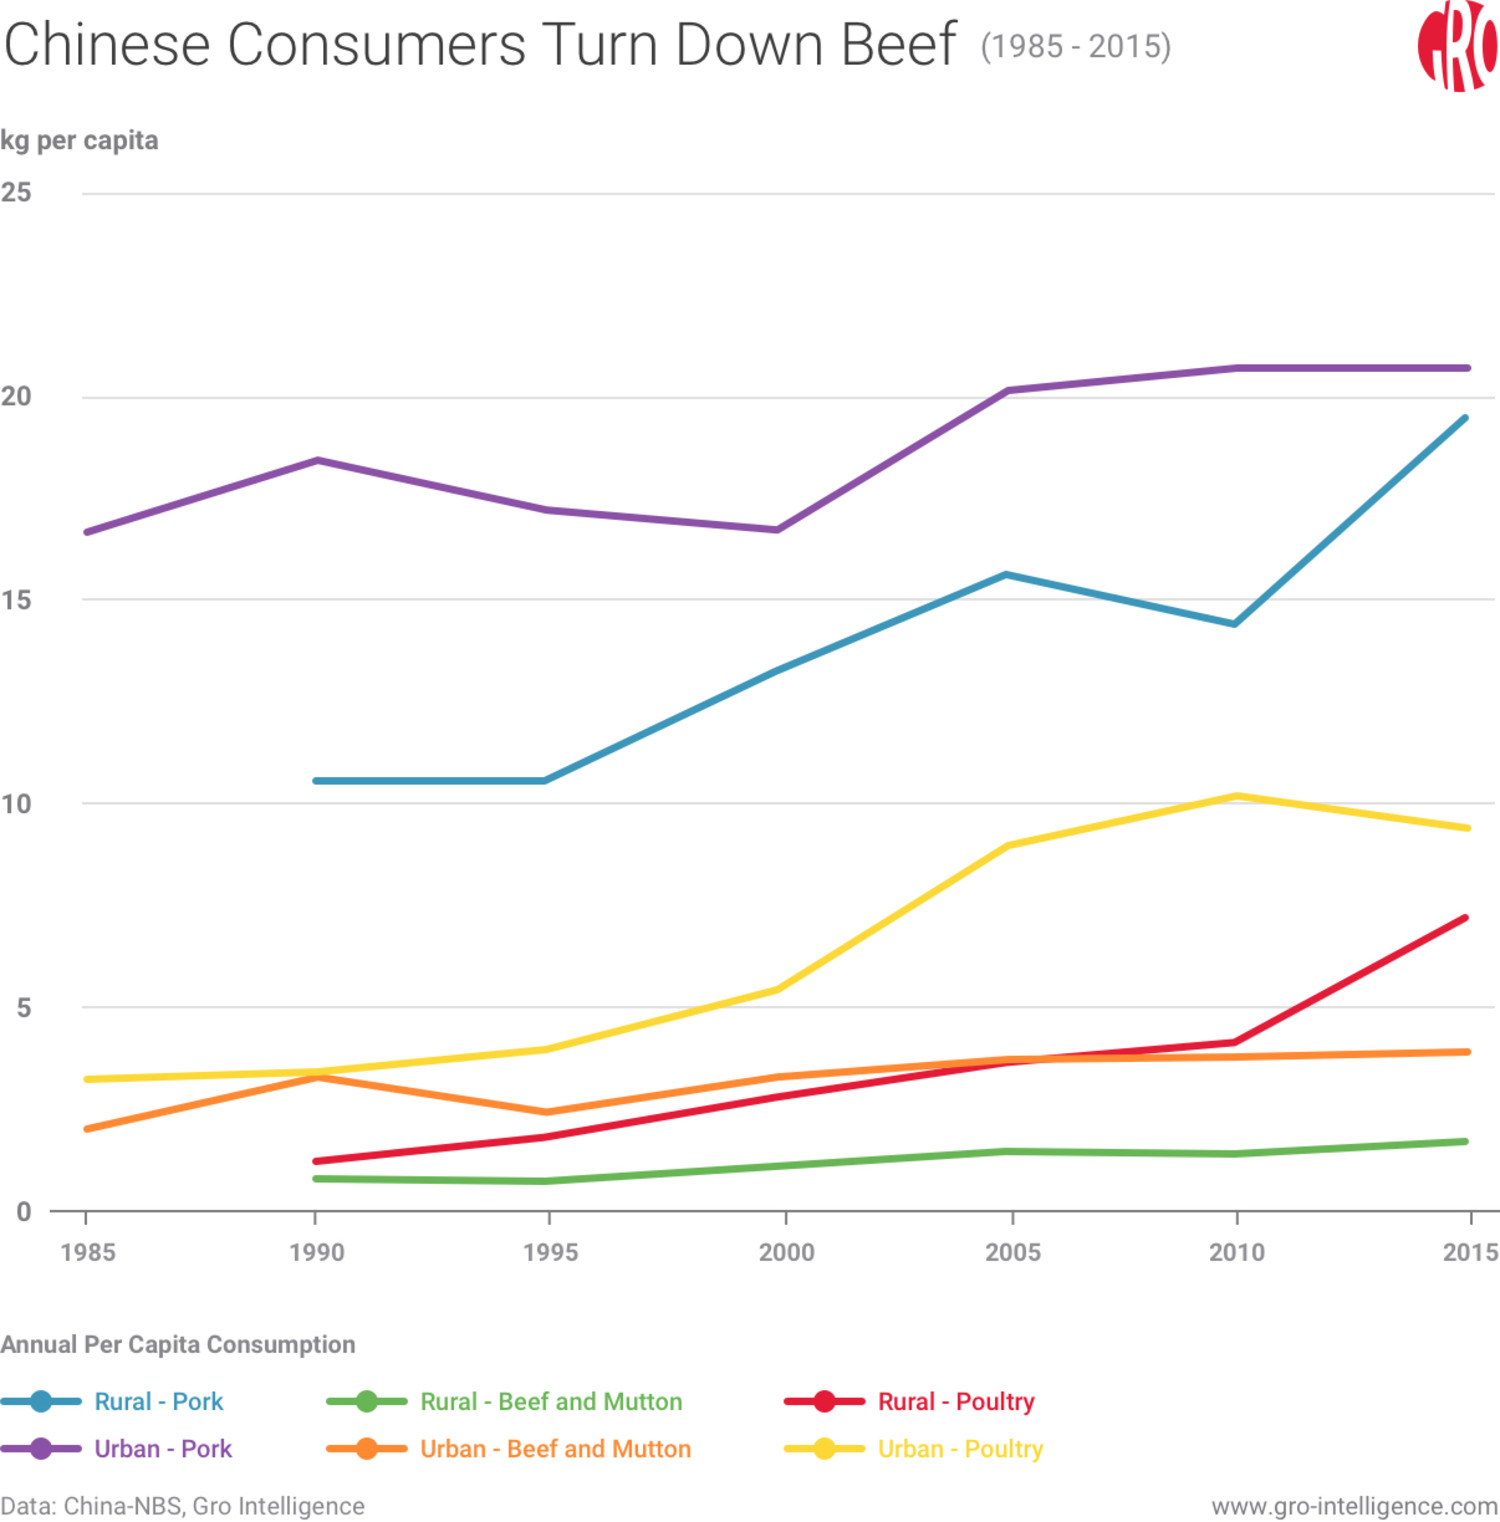 Chinese Consumers Turn Down Beef